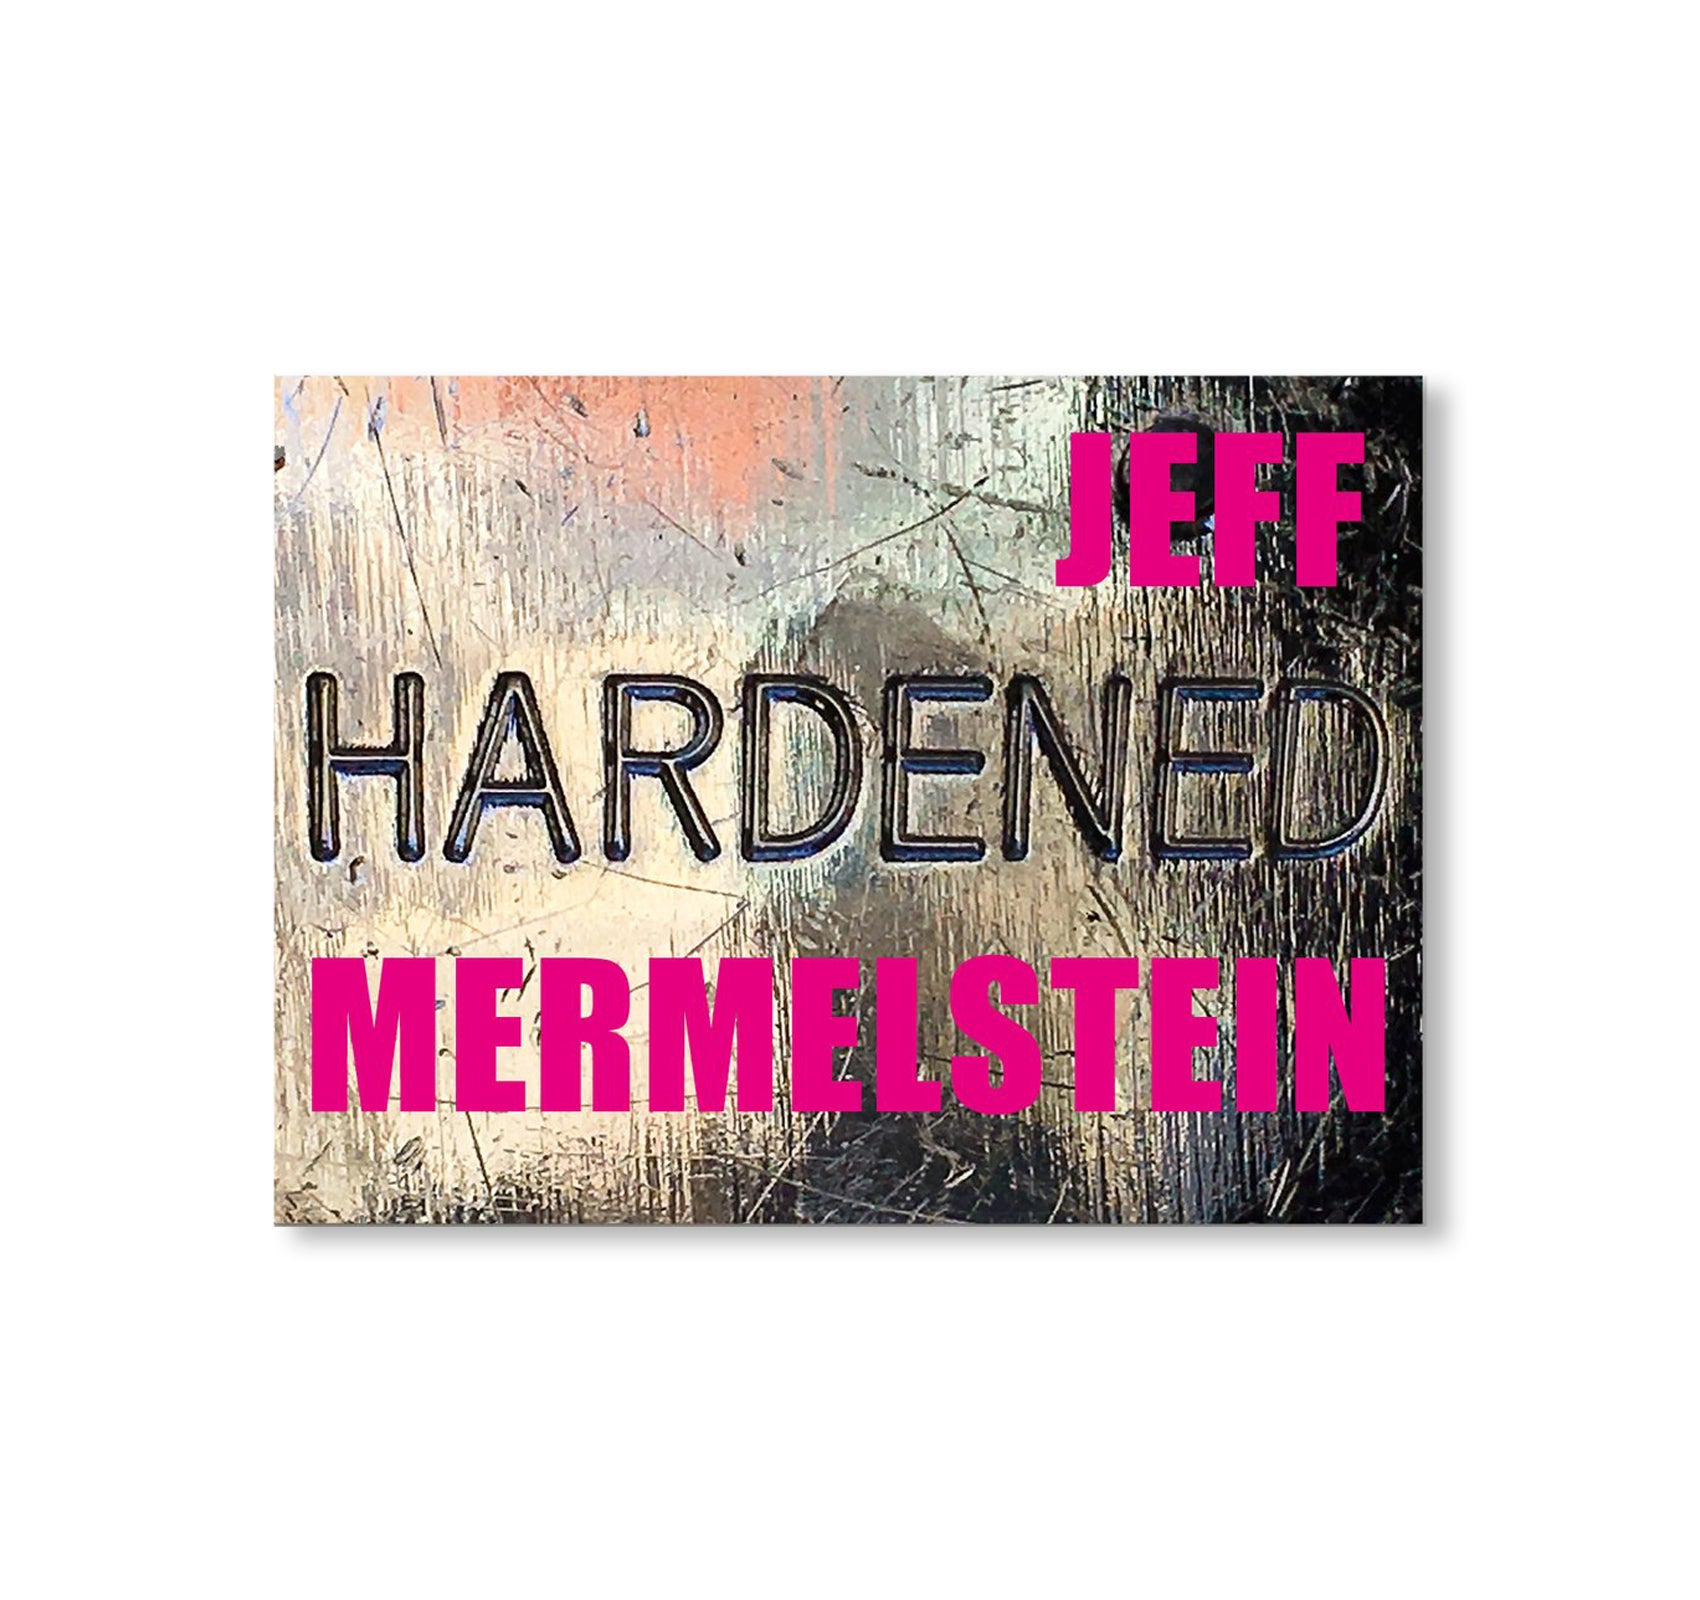 HARDENED by Jeff Mermelstein